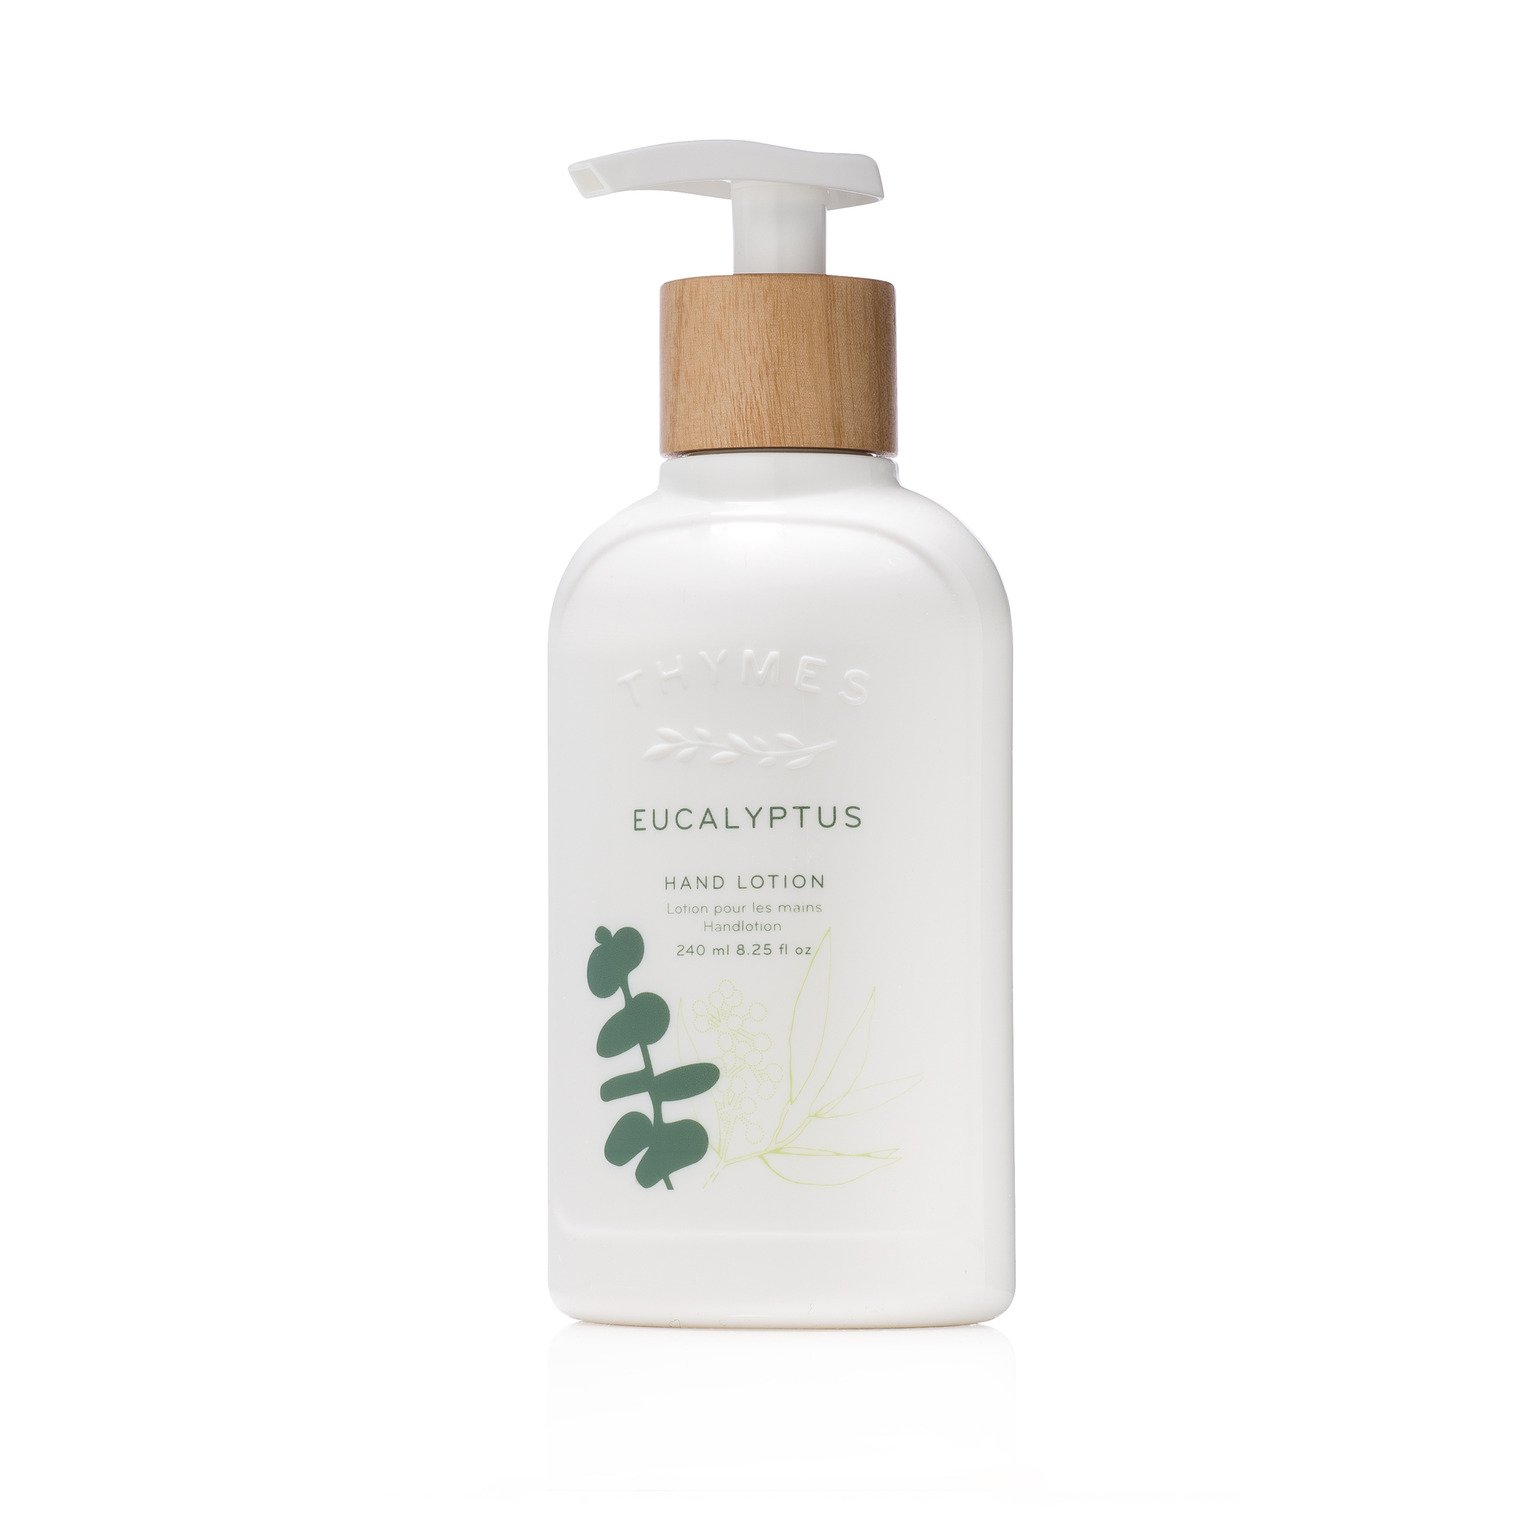 Thymes - Eucalyptus Hand Lotion with Pump - With Moisturizing Shea Butter and Vitamin E - 8.25 oz by Thymes